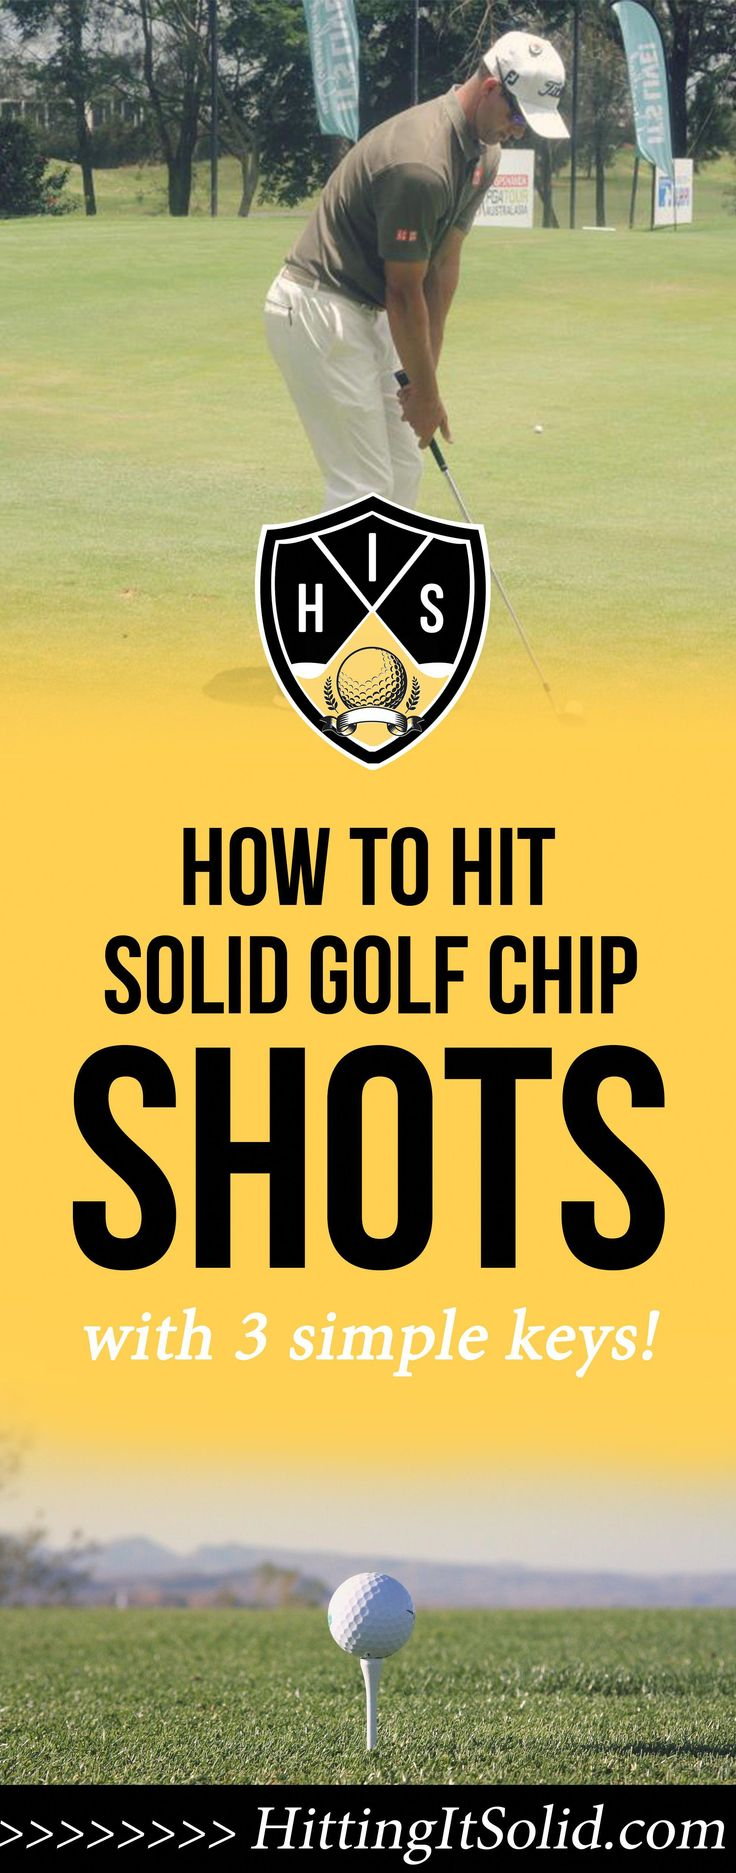 If you want to know how to hit solid golf chip shots